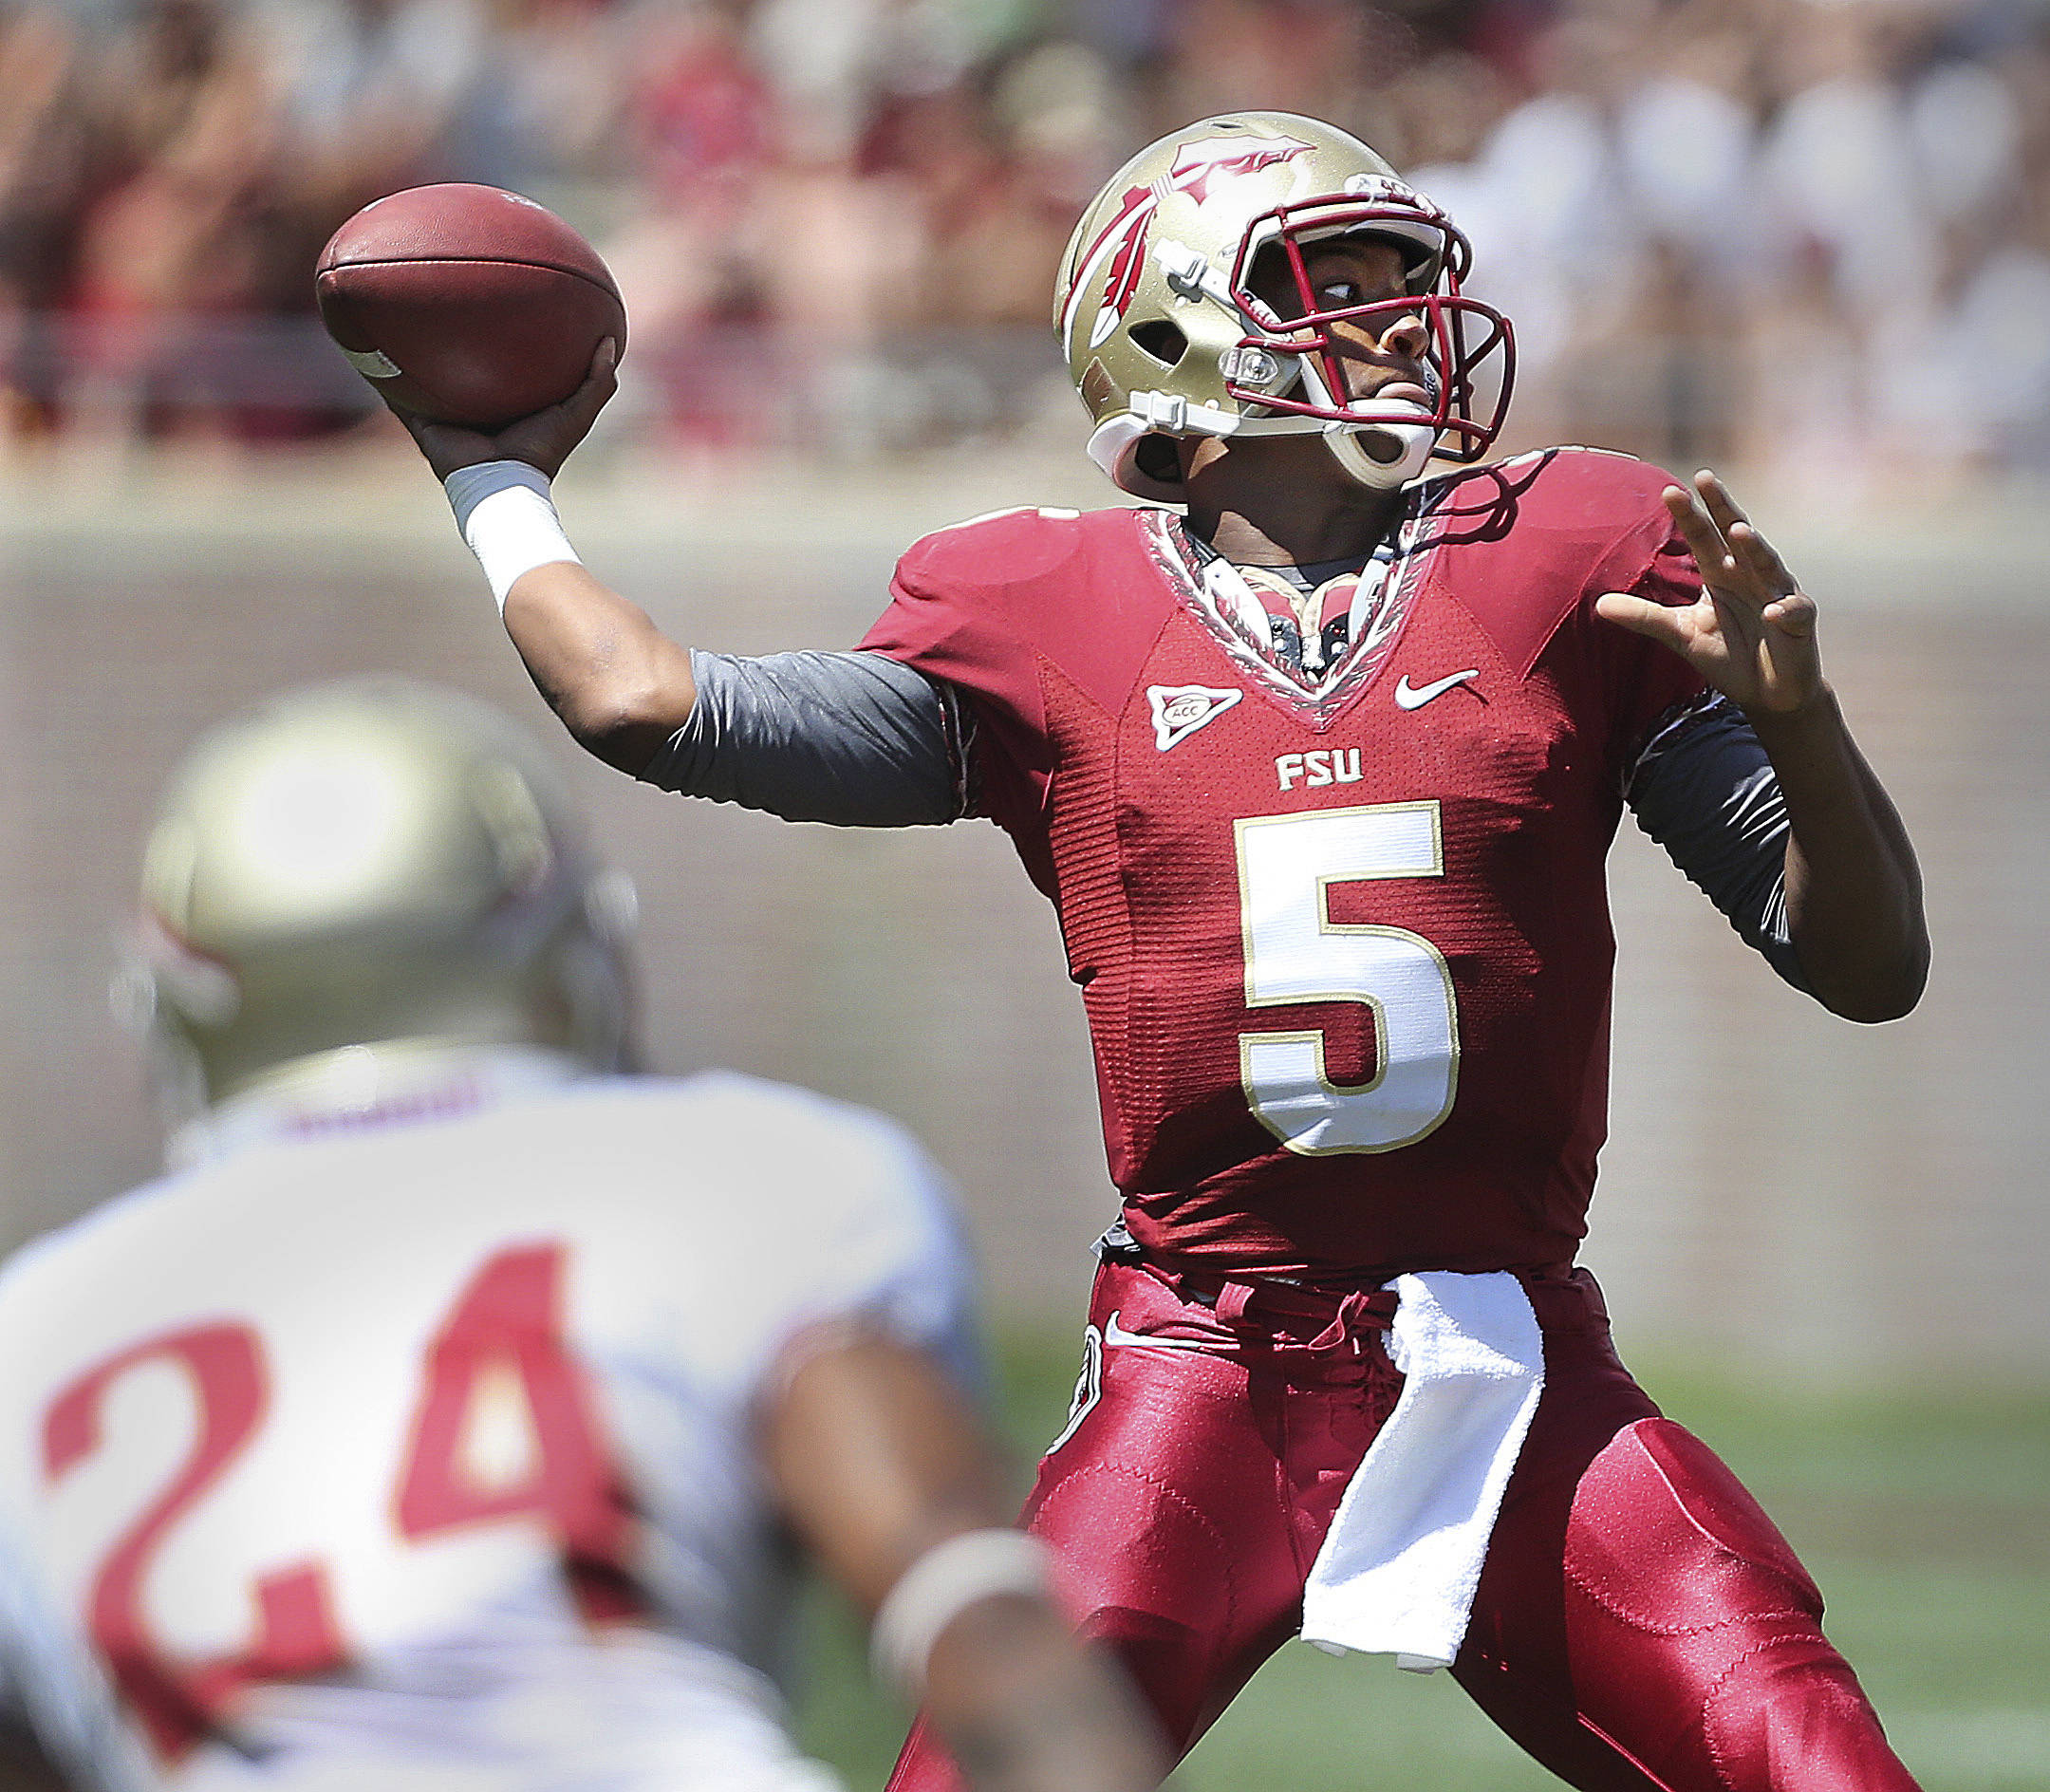 Redshirt freshman quarterback Jameis Winston threw for two scores and ran for another, but his Garnet team came up short during Saturday's Spring Football game inside of Doak Campbell Stadium on April 13, 2013. An estimated 25,000 people came out to get a first look at the Seminoles. (AP Photo/Tallahassee Democrat, Mike Ewen)